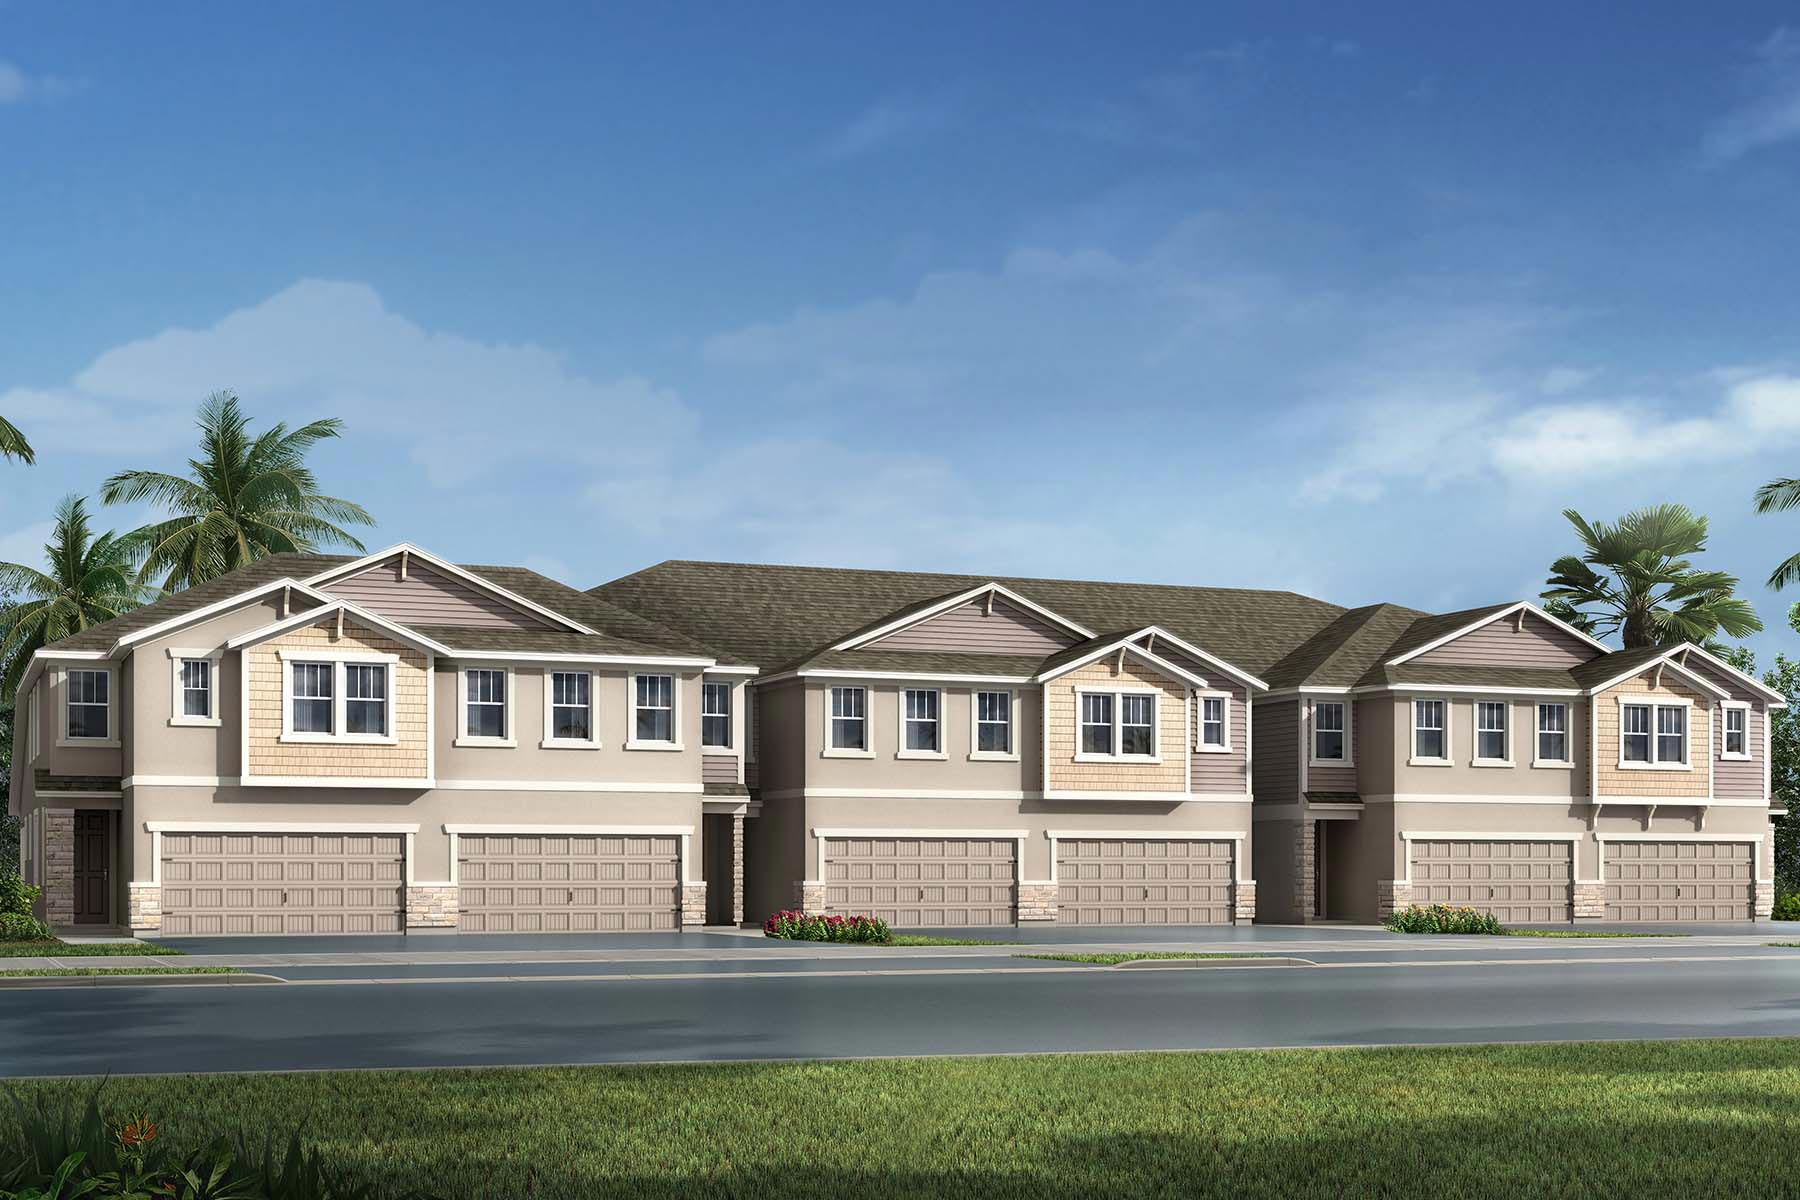 Sebring Plan TownHomes at Avea Pointe in Lutz Florida by Mattamy Homes